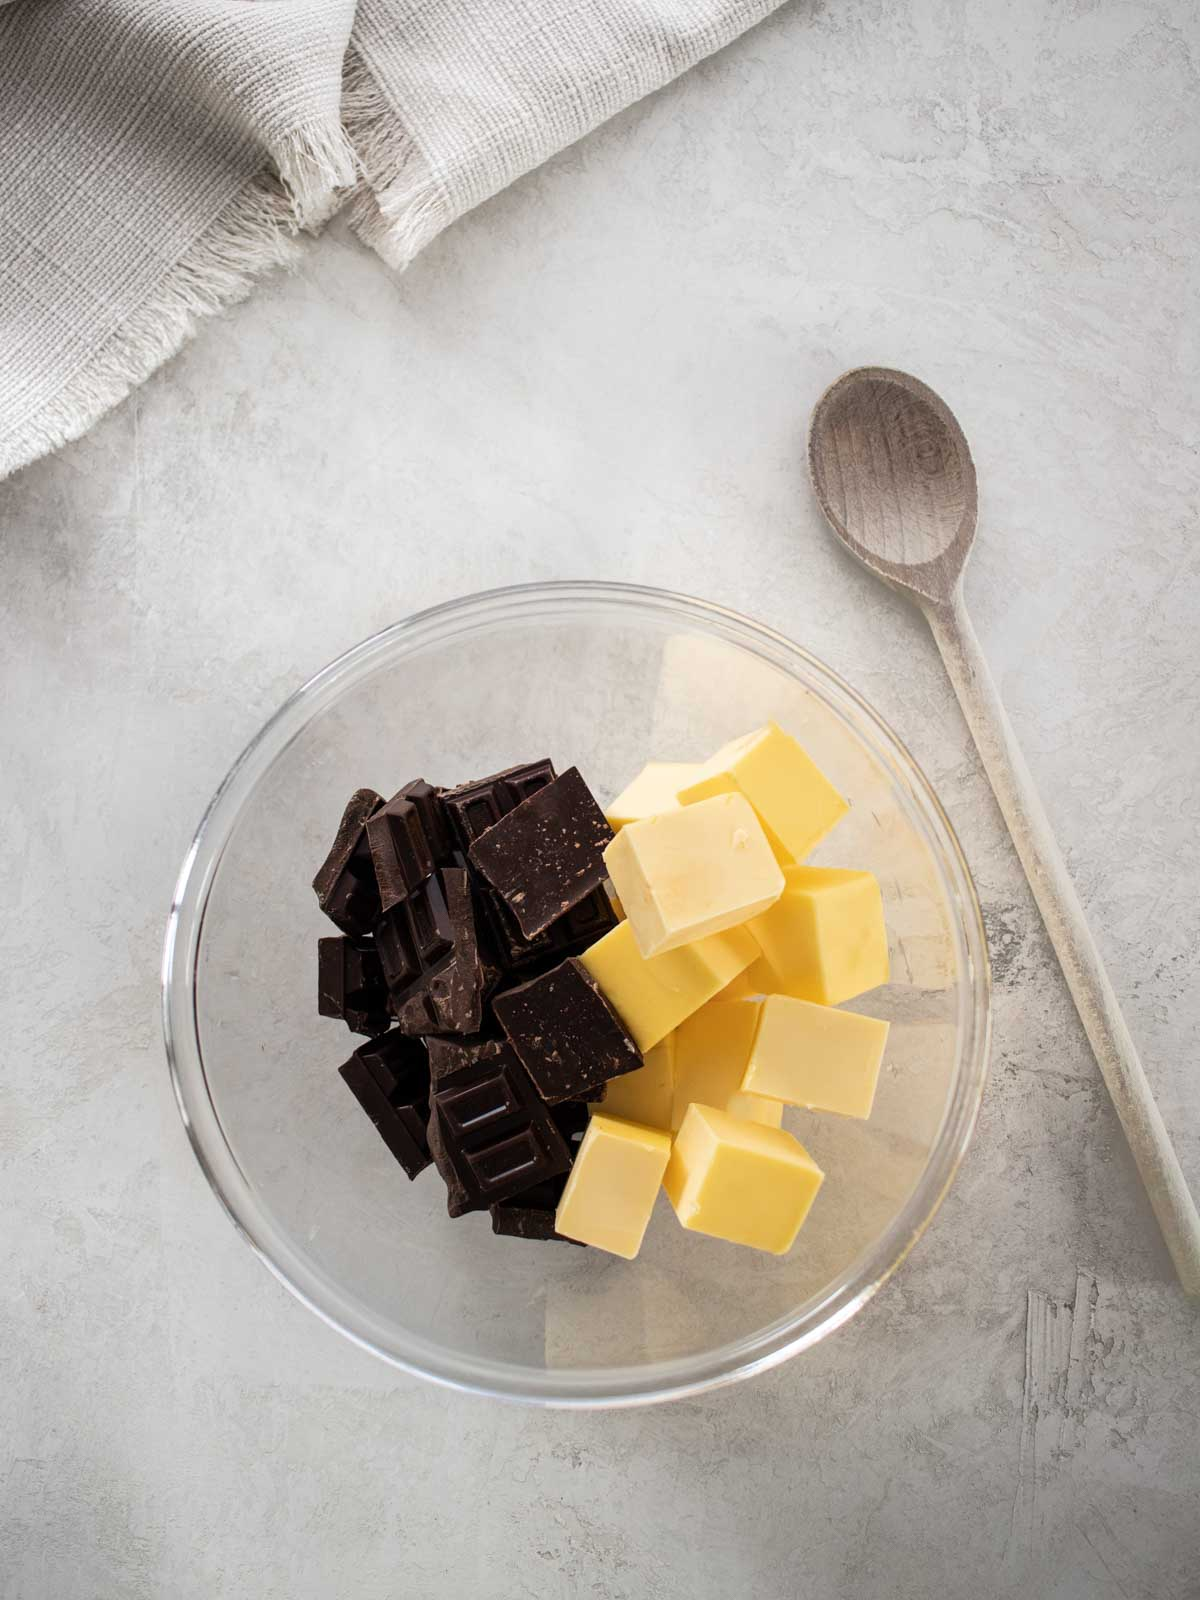 Chocolate and butter in a bowl